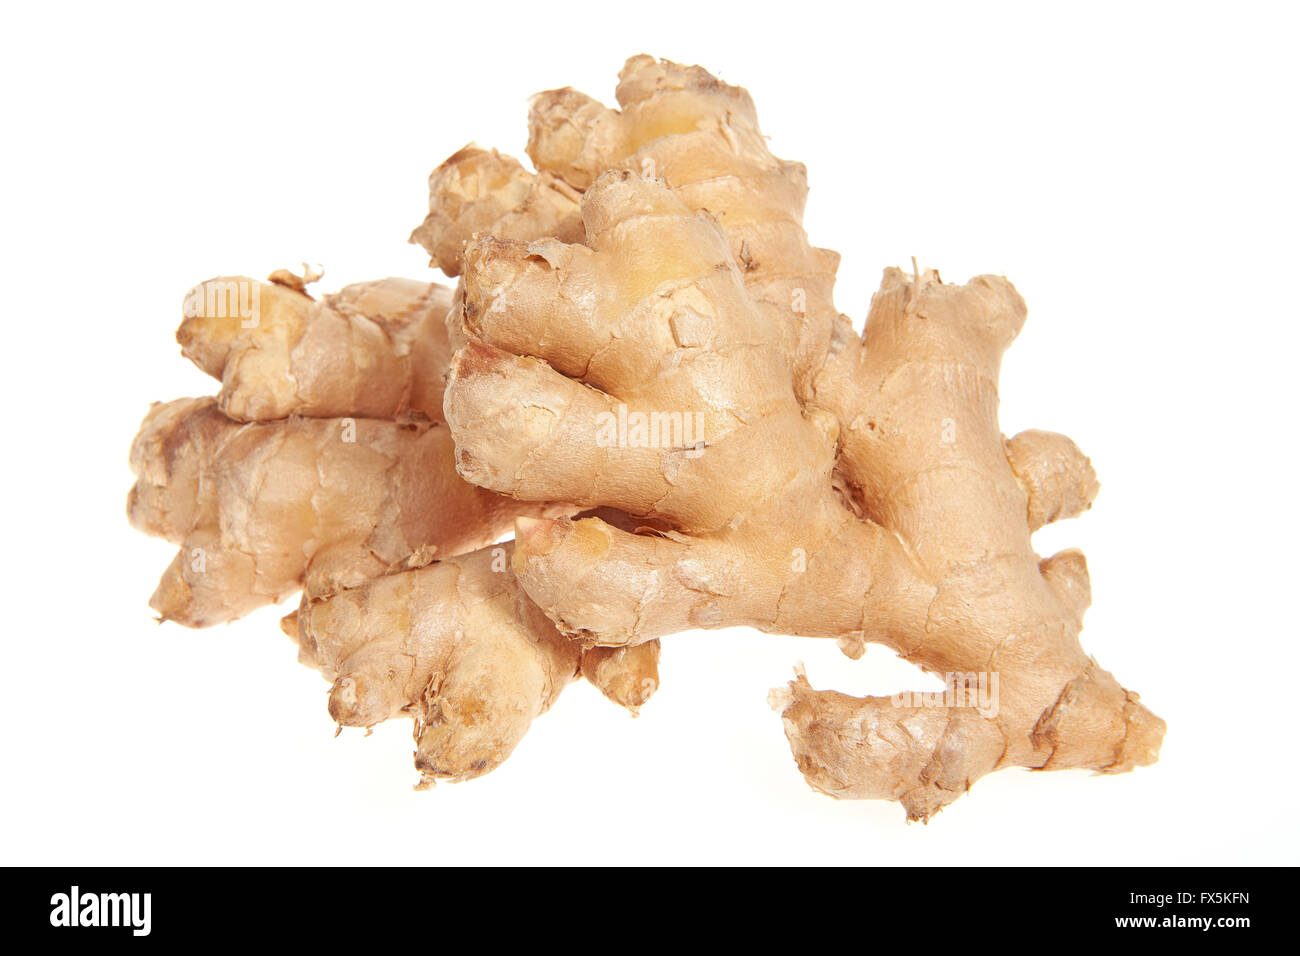 Ginger Rhizome or root isolated on a white background - Stock Image